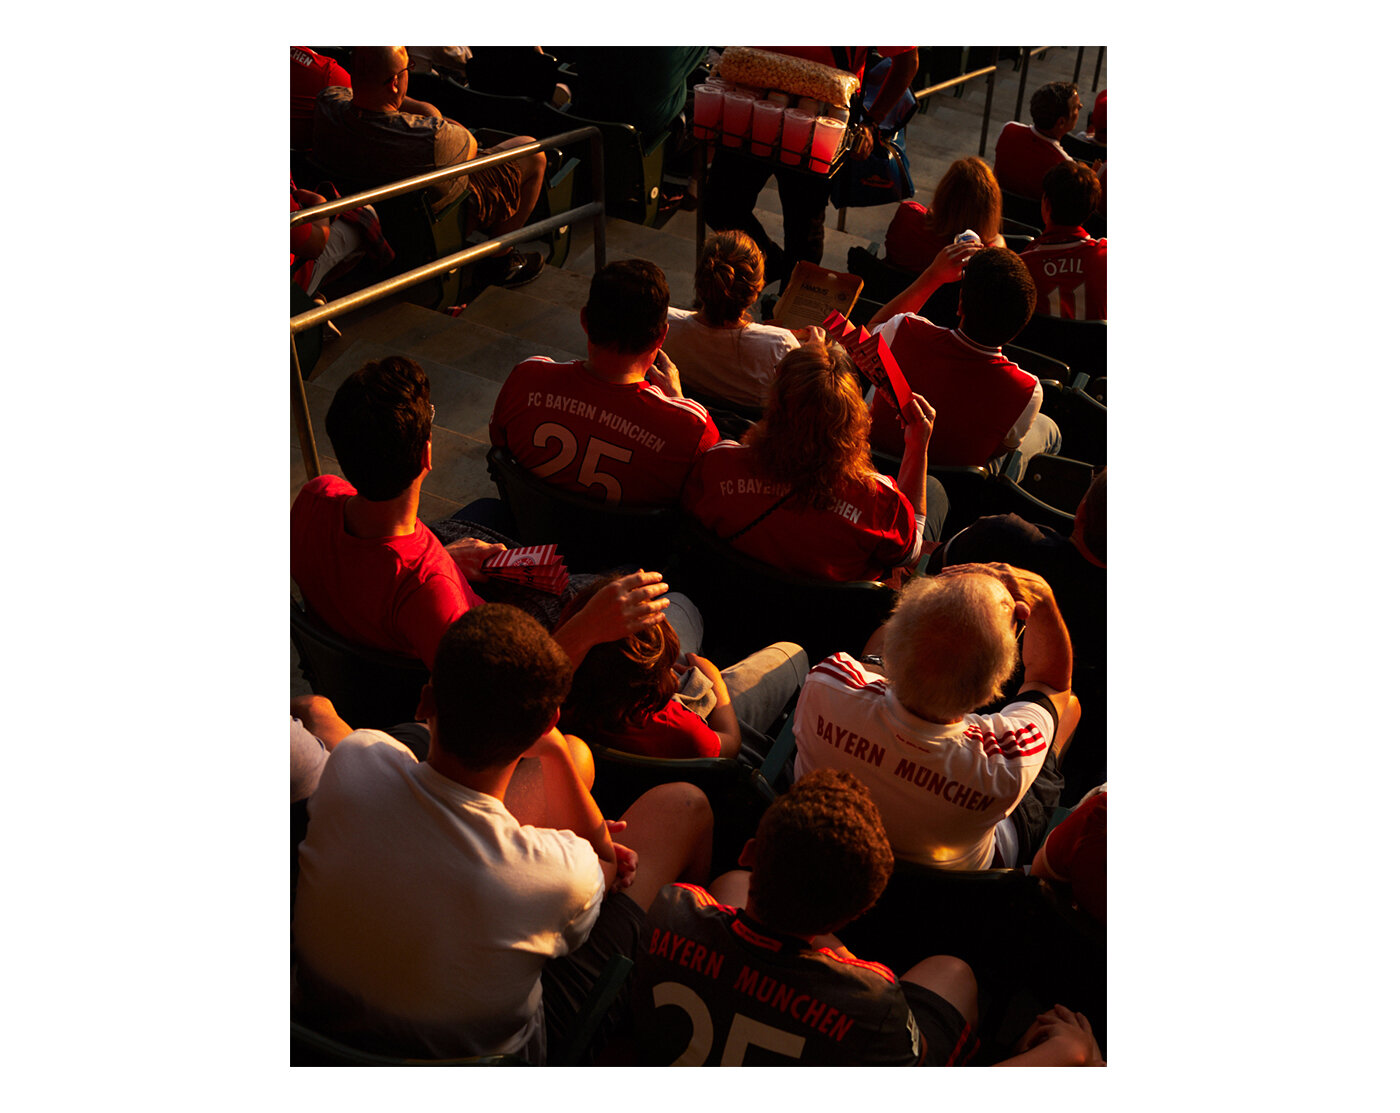 FC Bayern Munich in Los Angeles, photographed by Brad Torchia